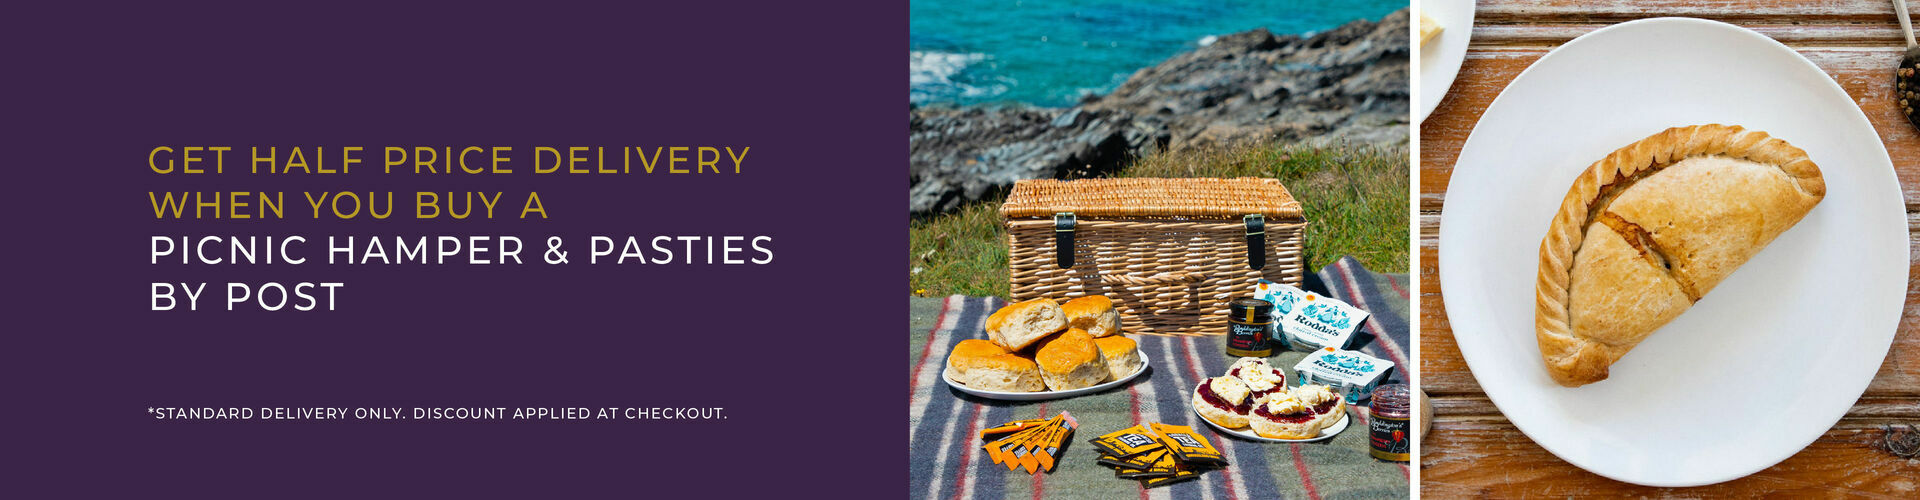 Picnic / Pasties Offer